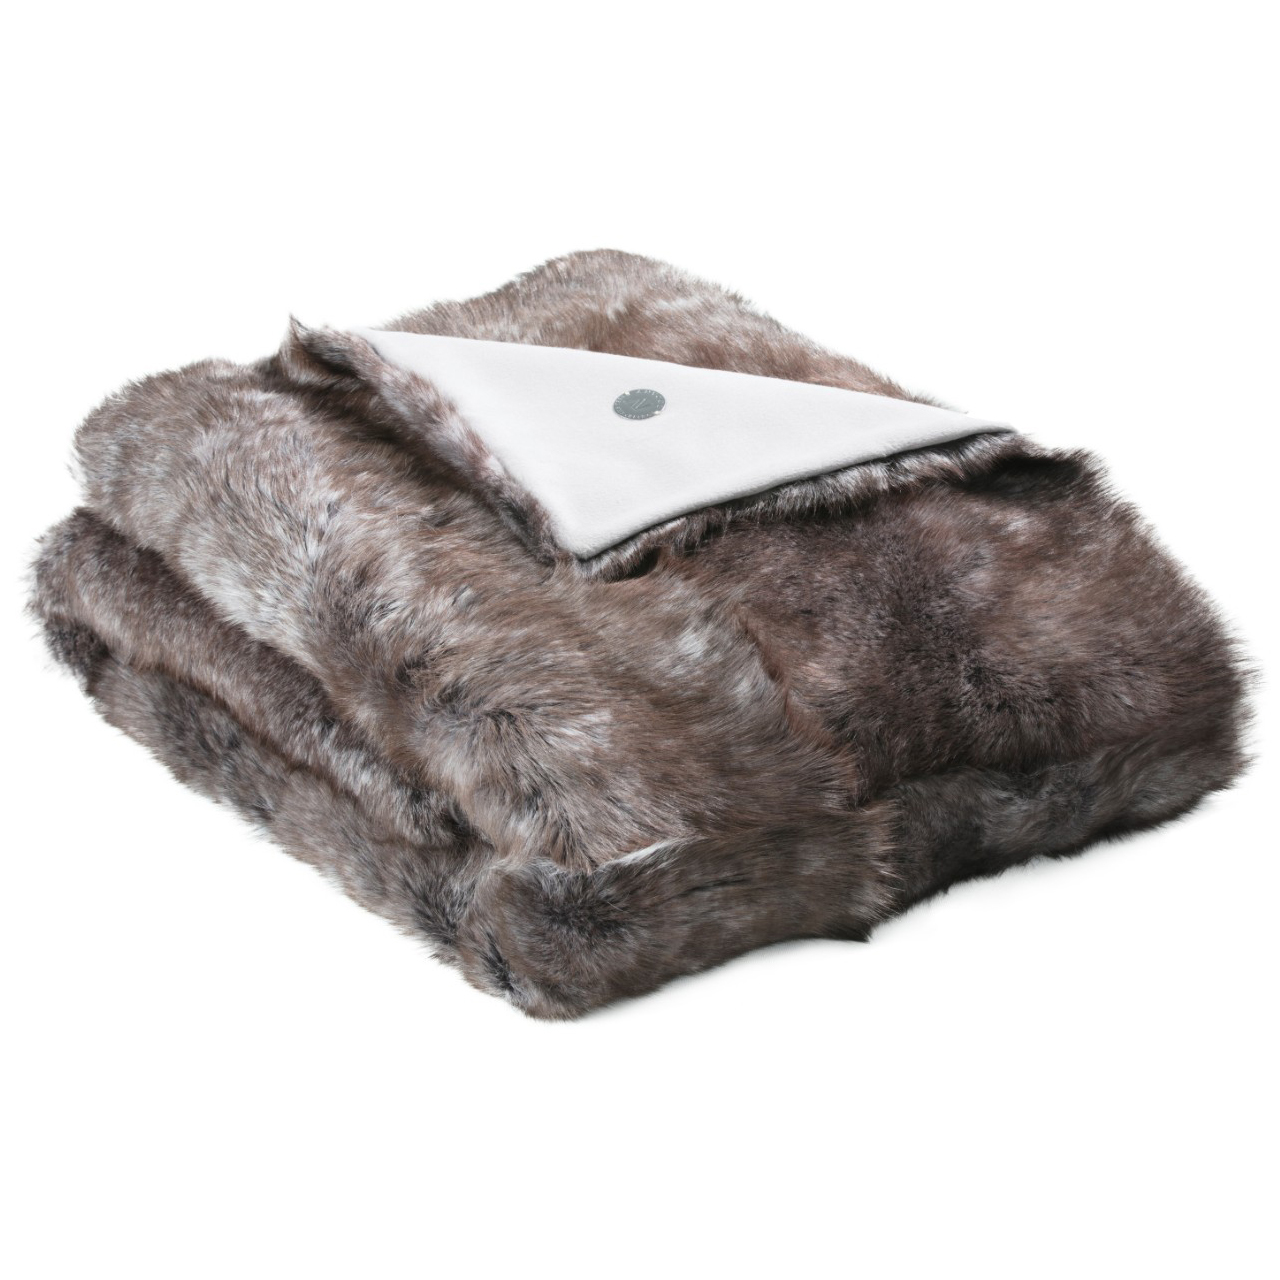 NEW-Shearling Throw- Sable-134x150cm(STSABTO134150) - ANVOGG FEEL SHEARLING | ANVOGG